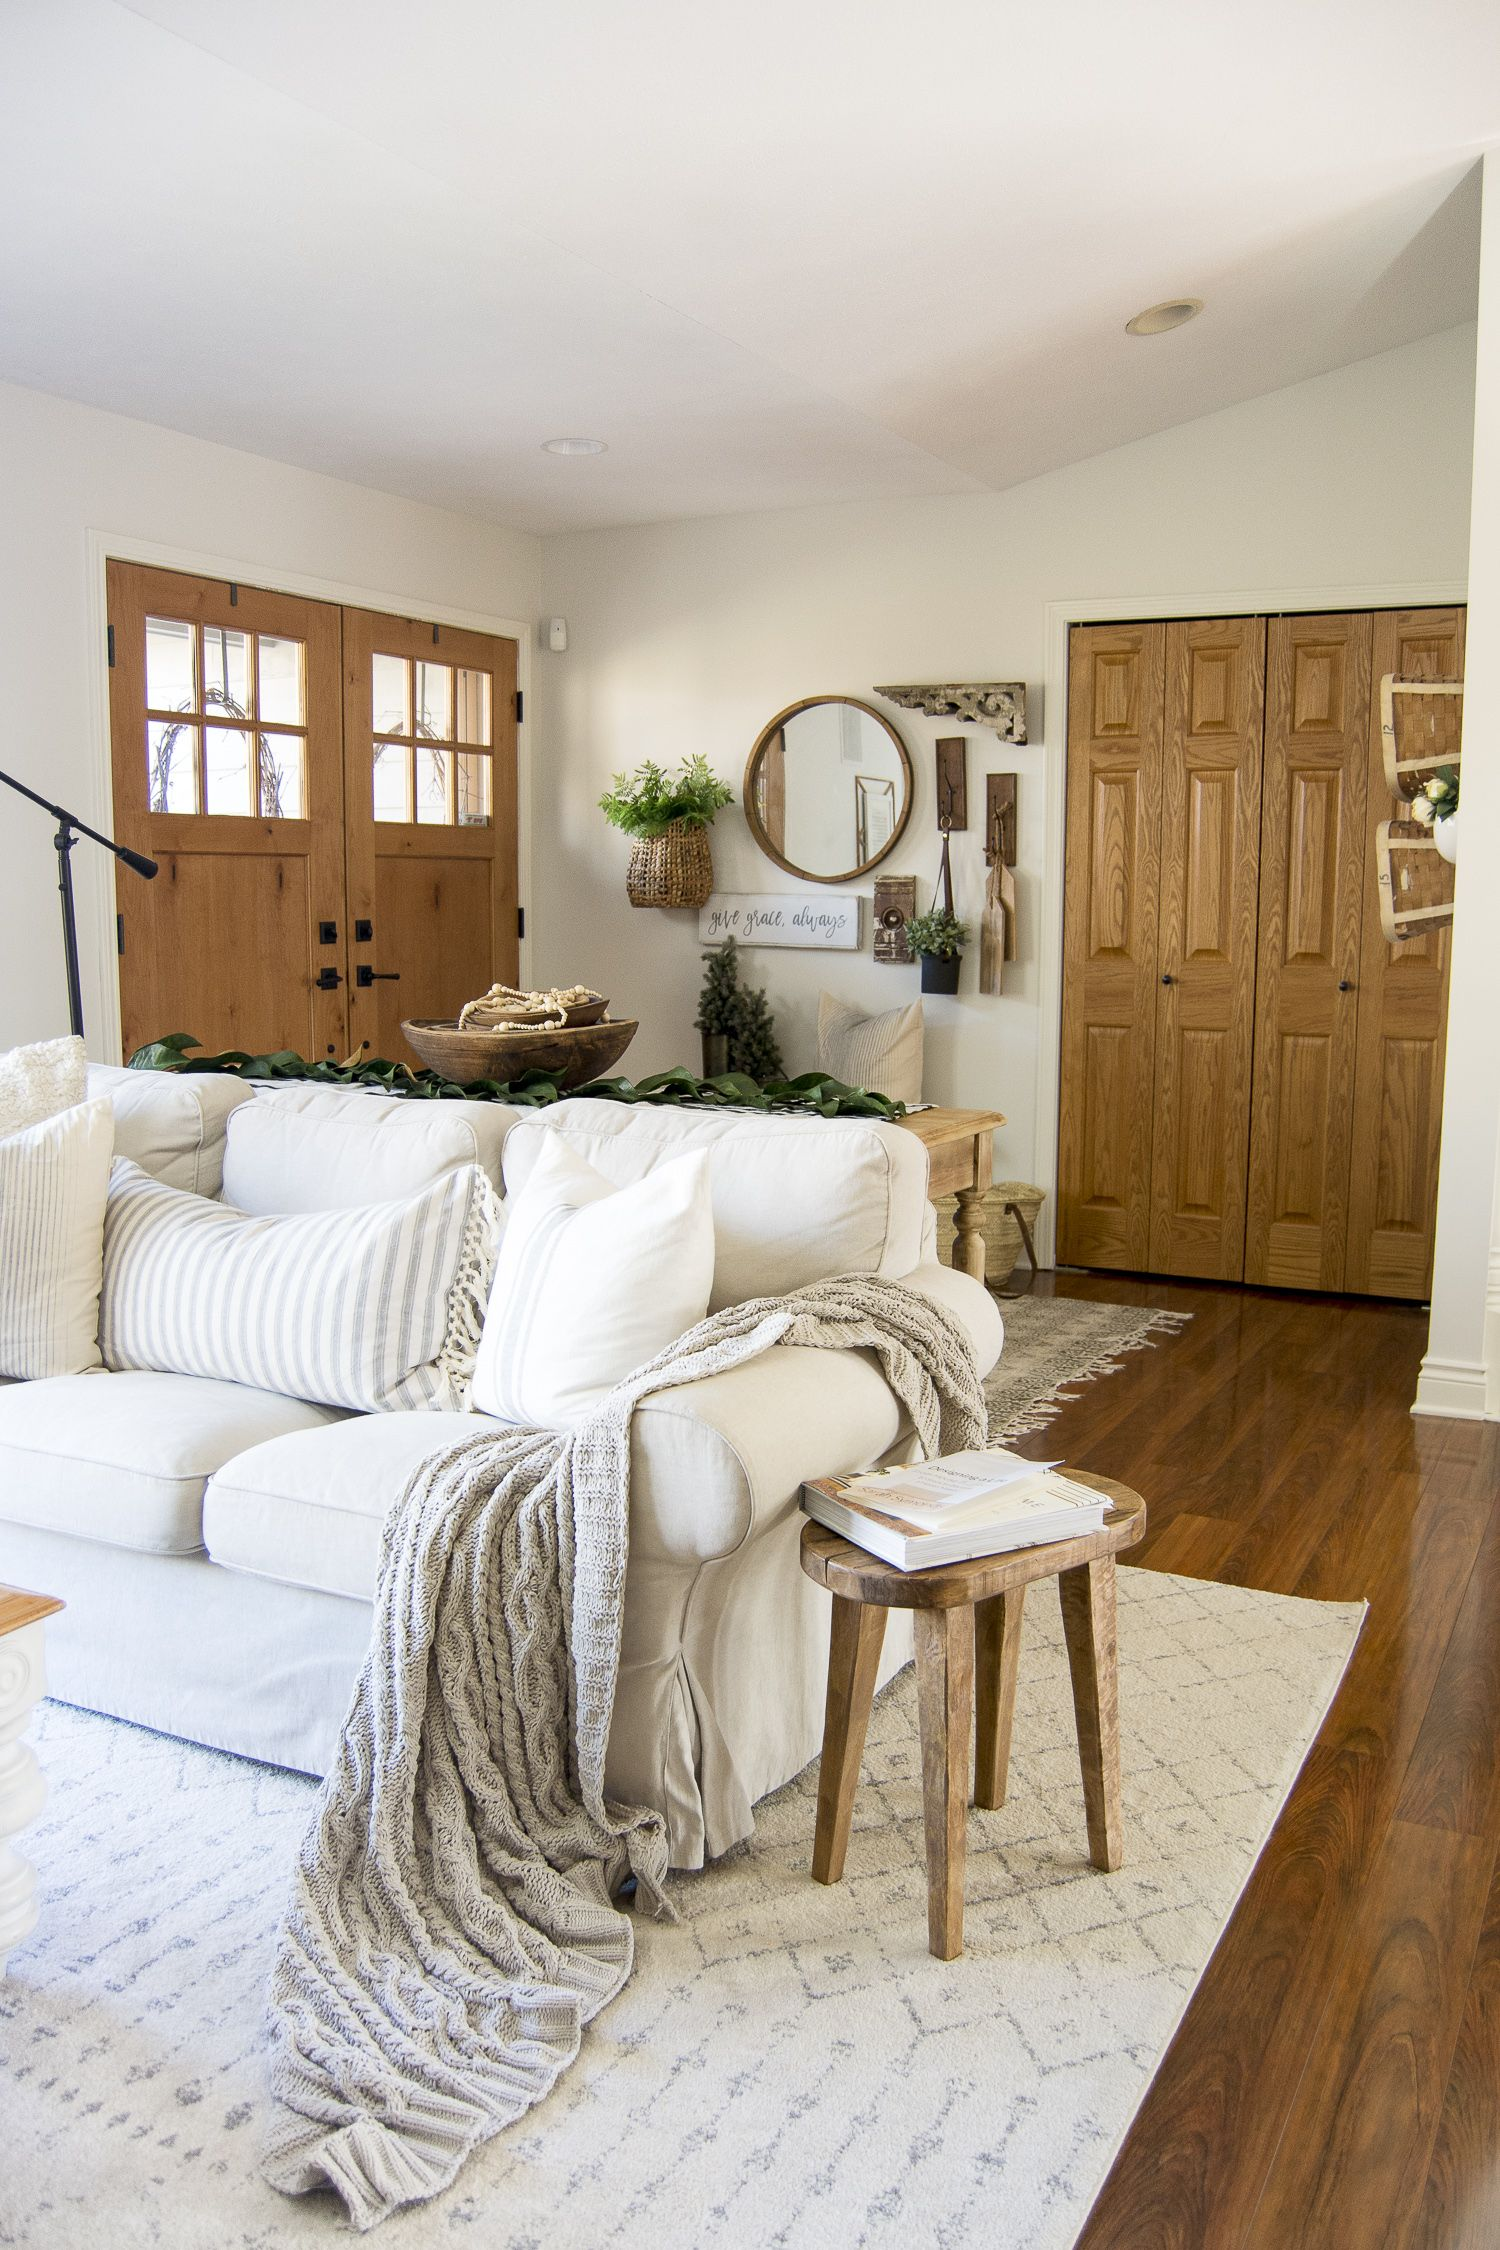 Interior Design Inspiration: A Complete Guide to Creating Spaces Part 1